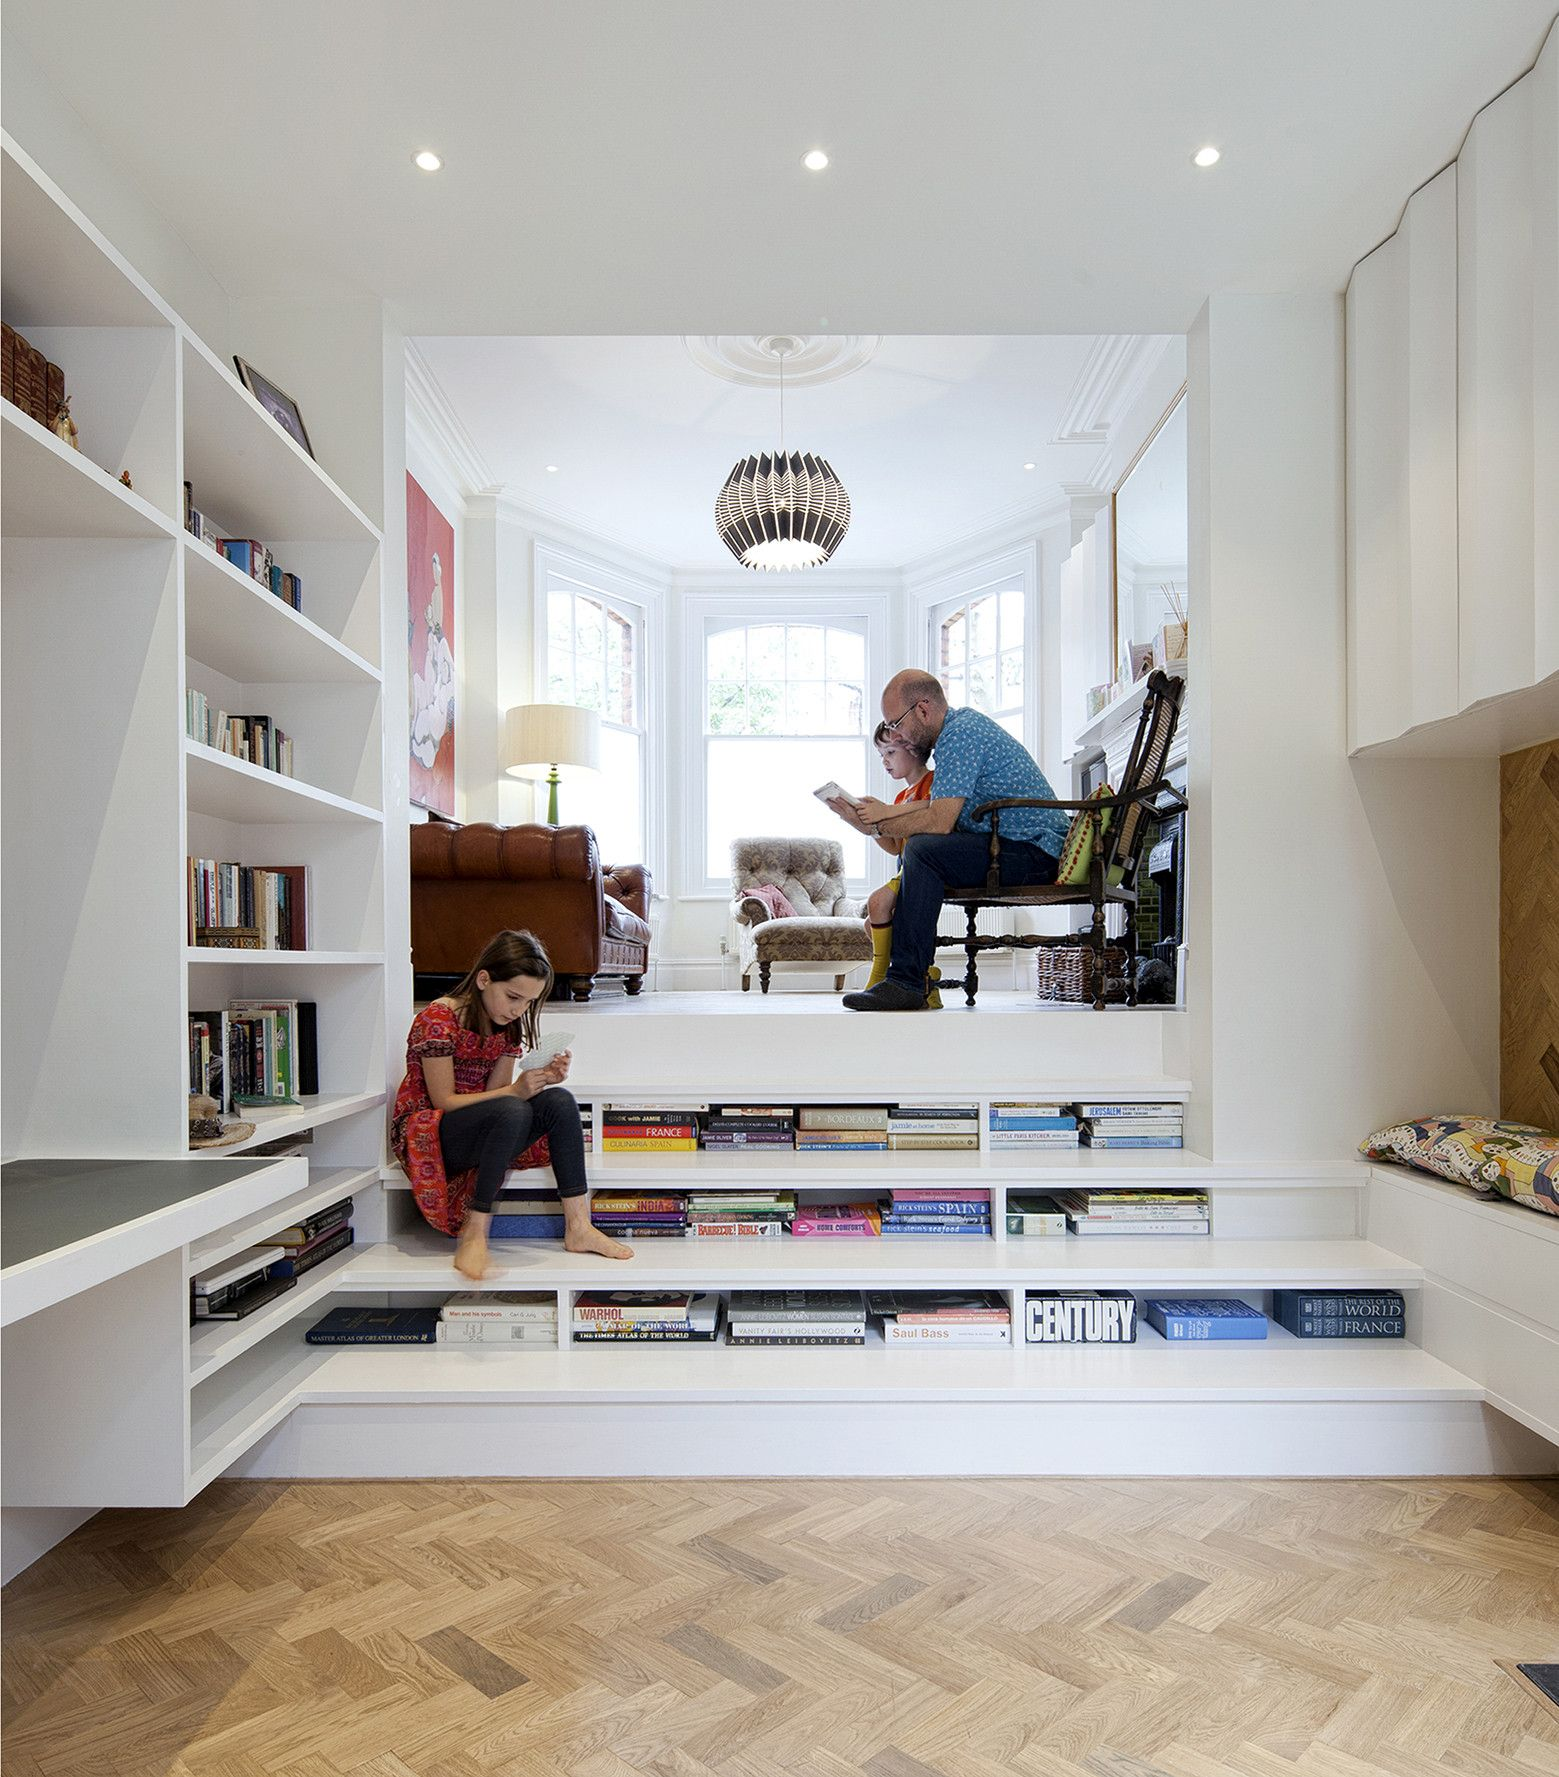 private Nook Treppen Bibliothek